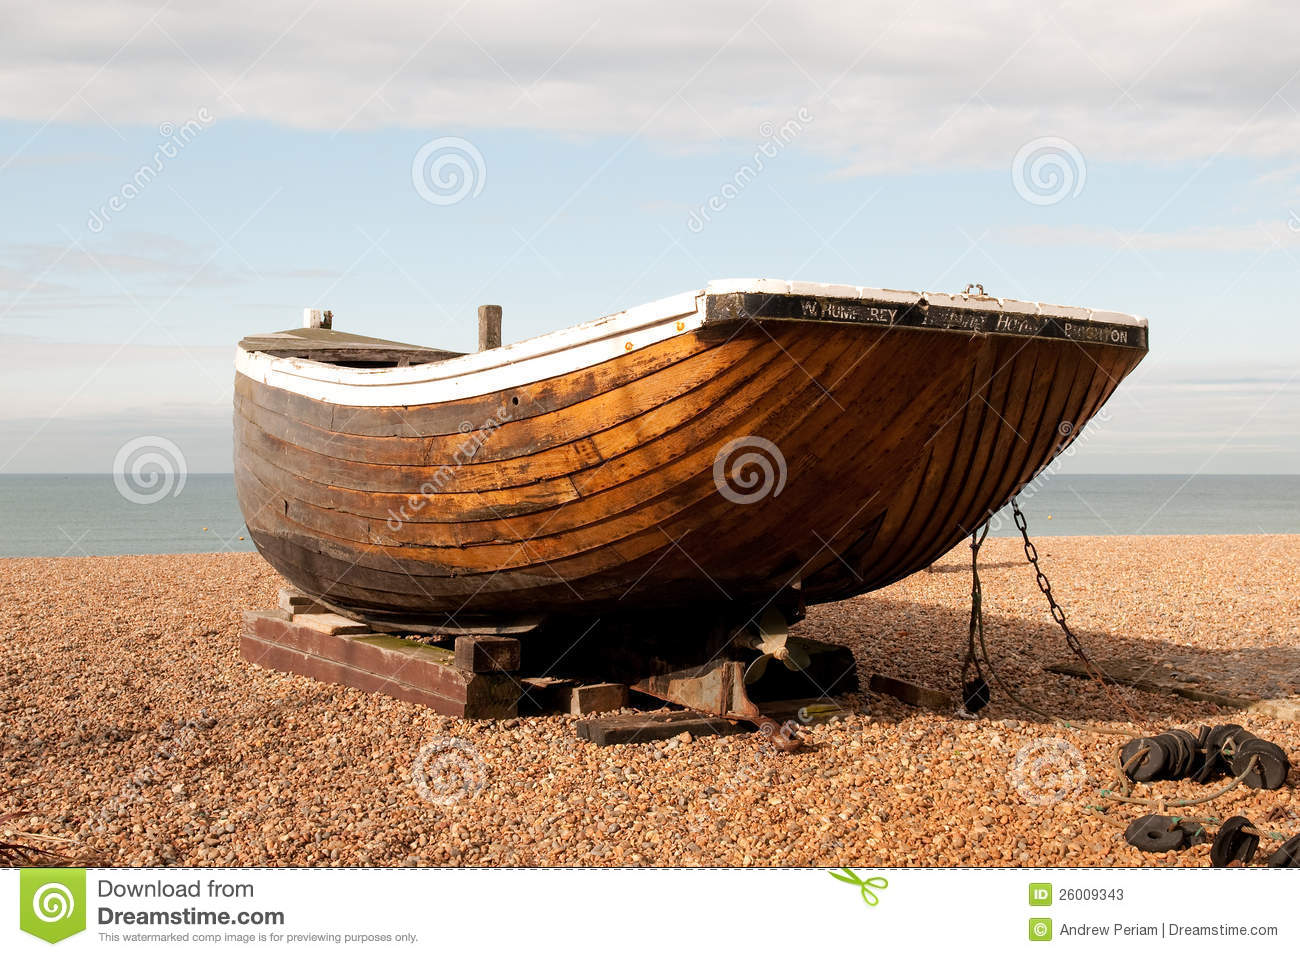 Old Wooden Boat Stock Photos - Image: 26009343